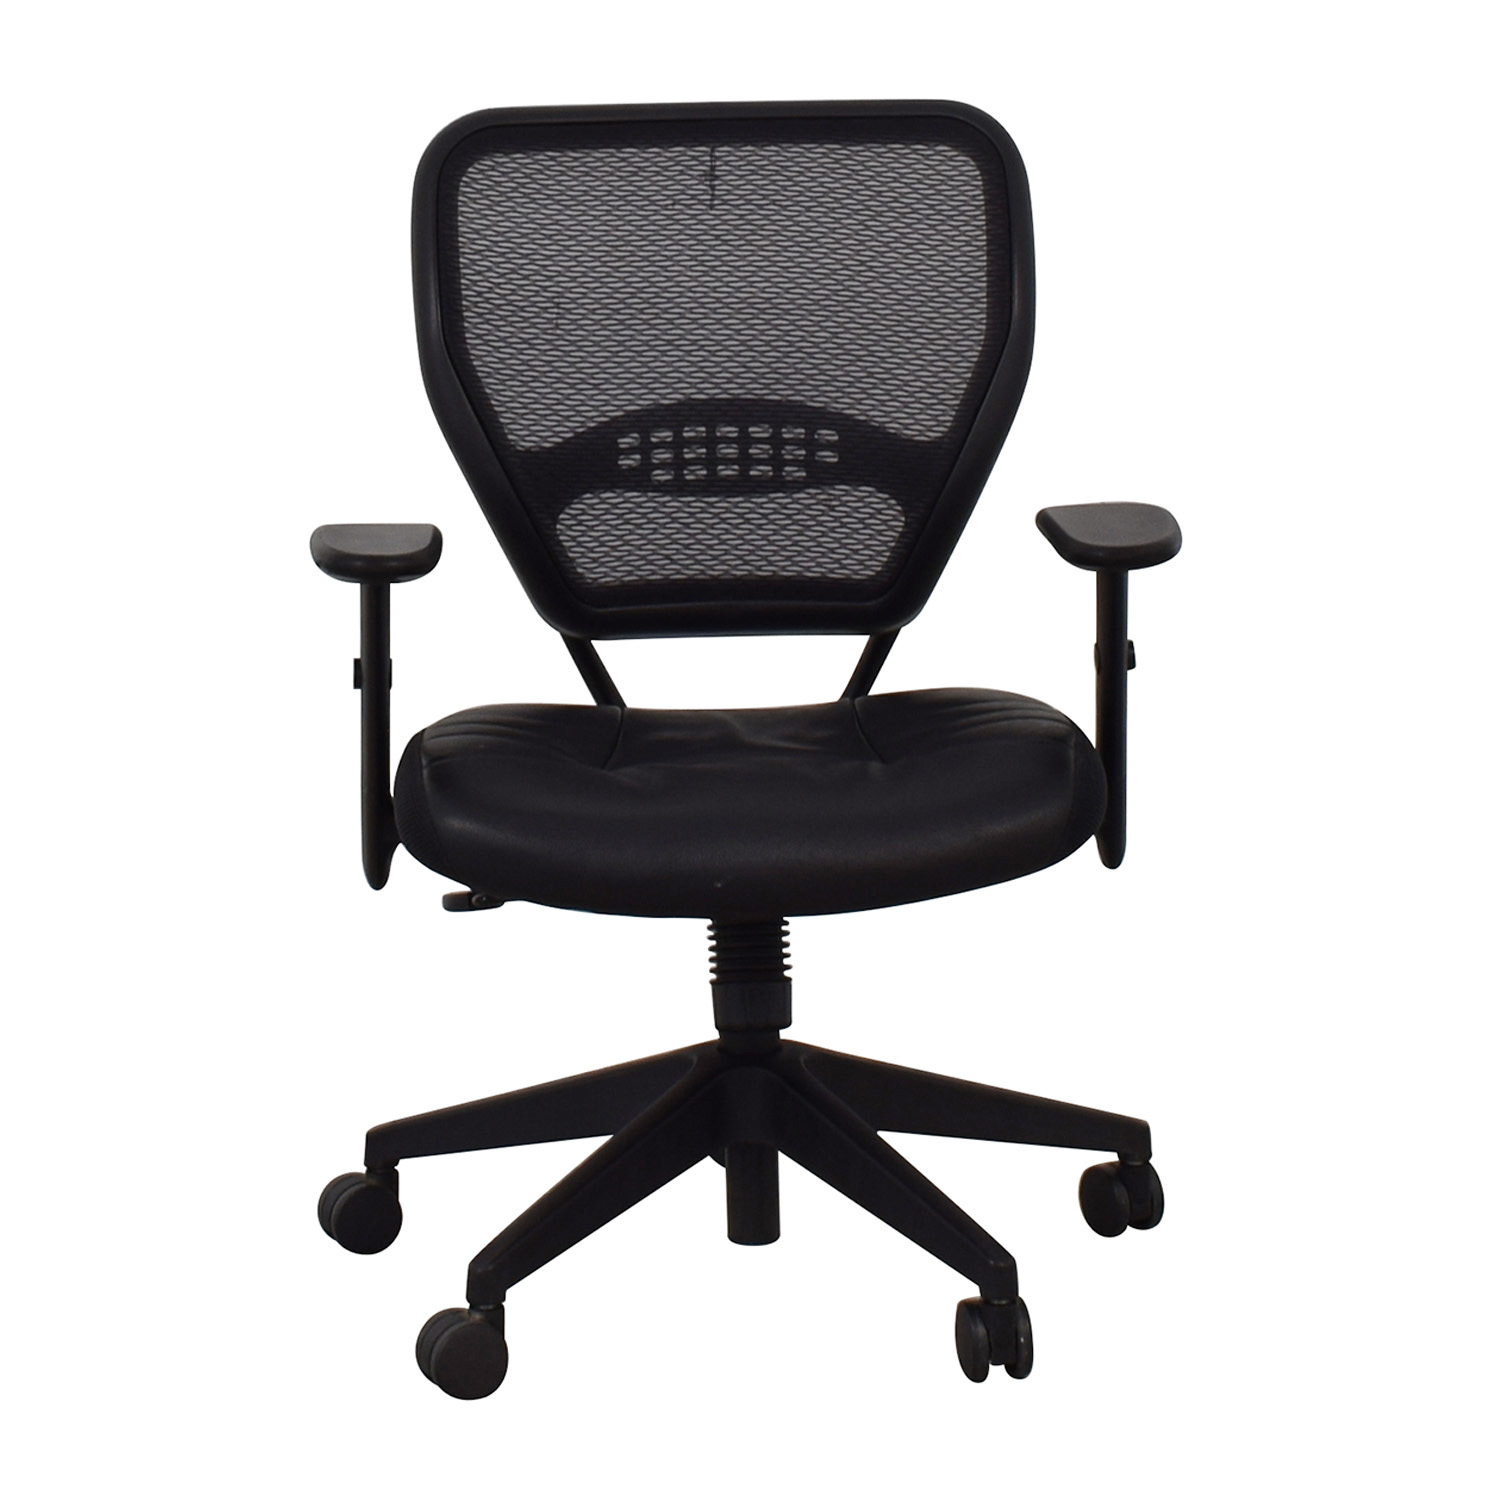 buy Office Star Office Star Mesh Desk Chair online